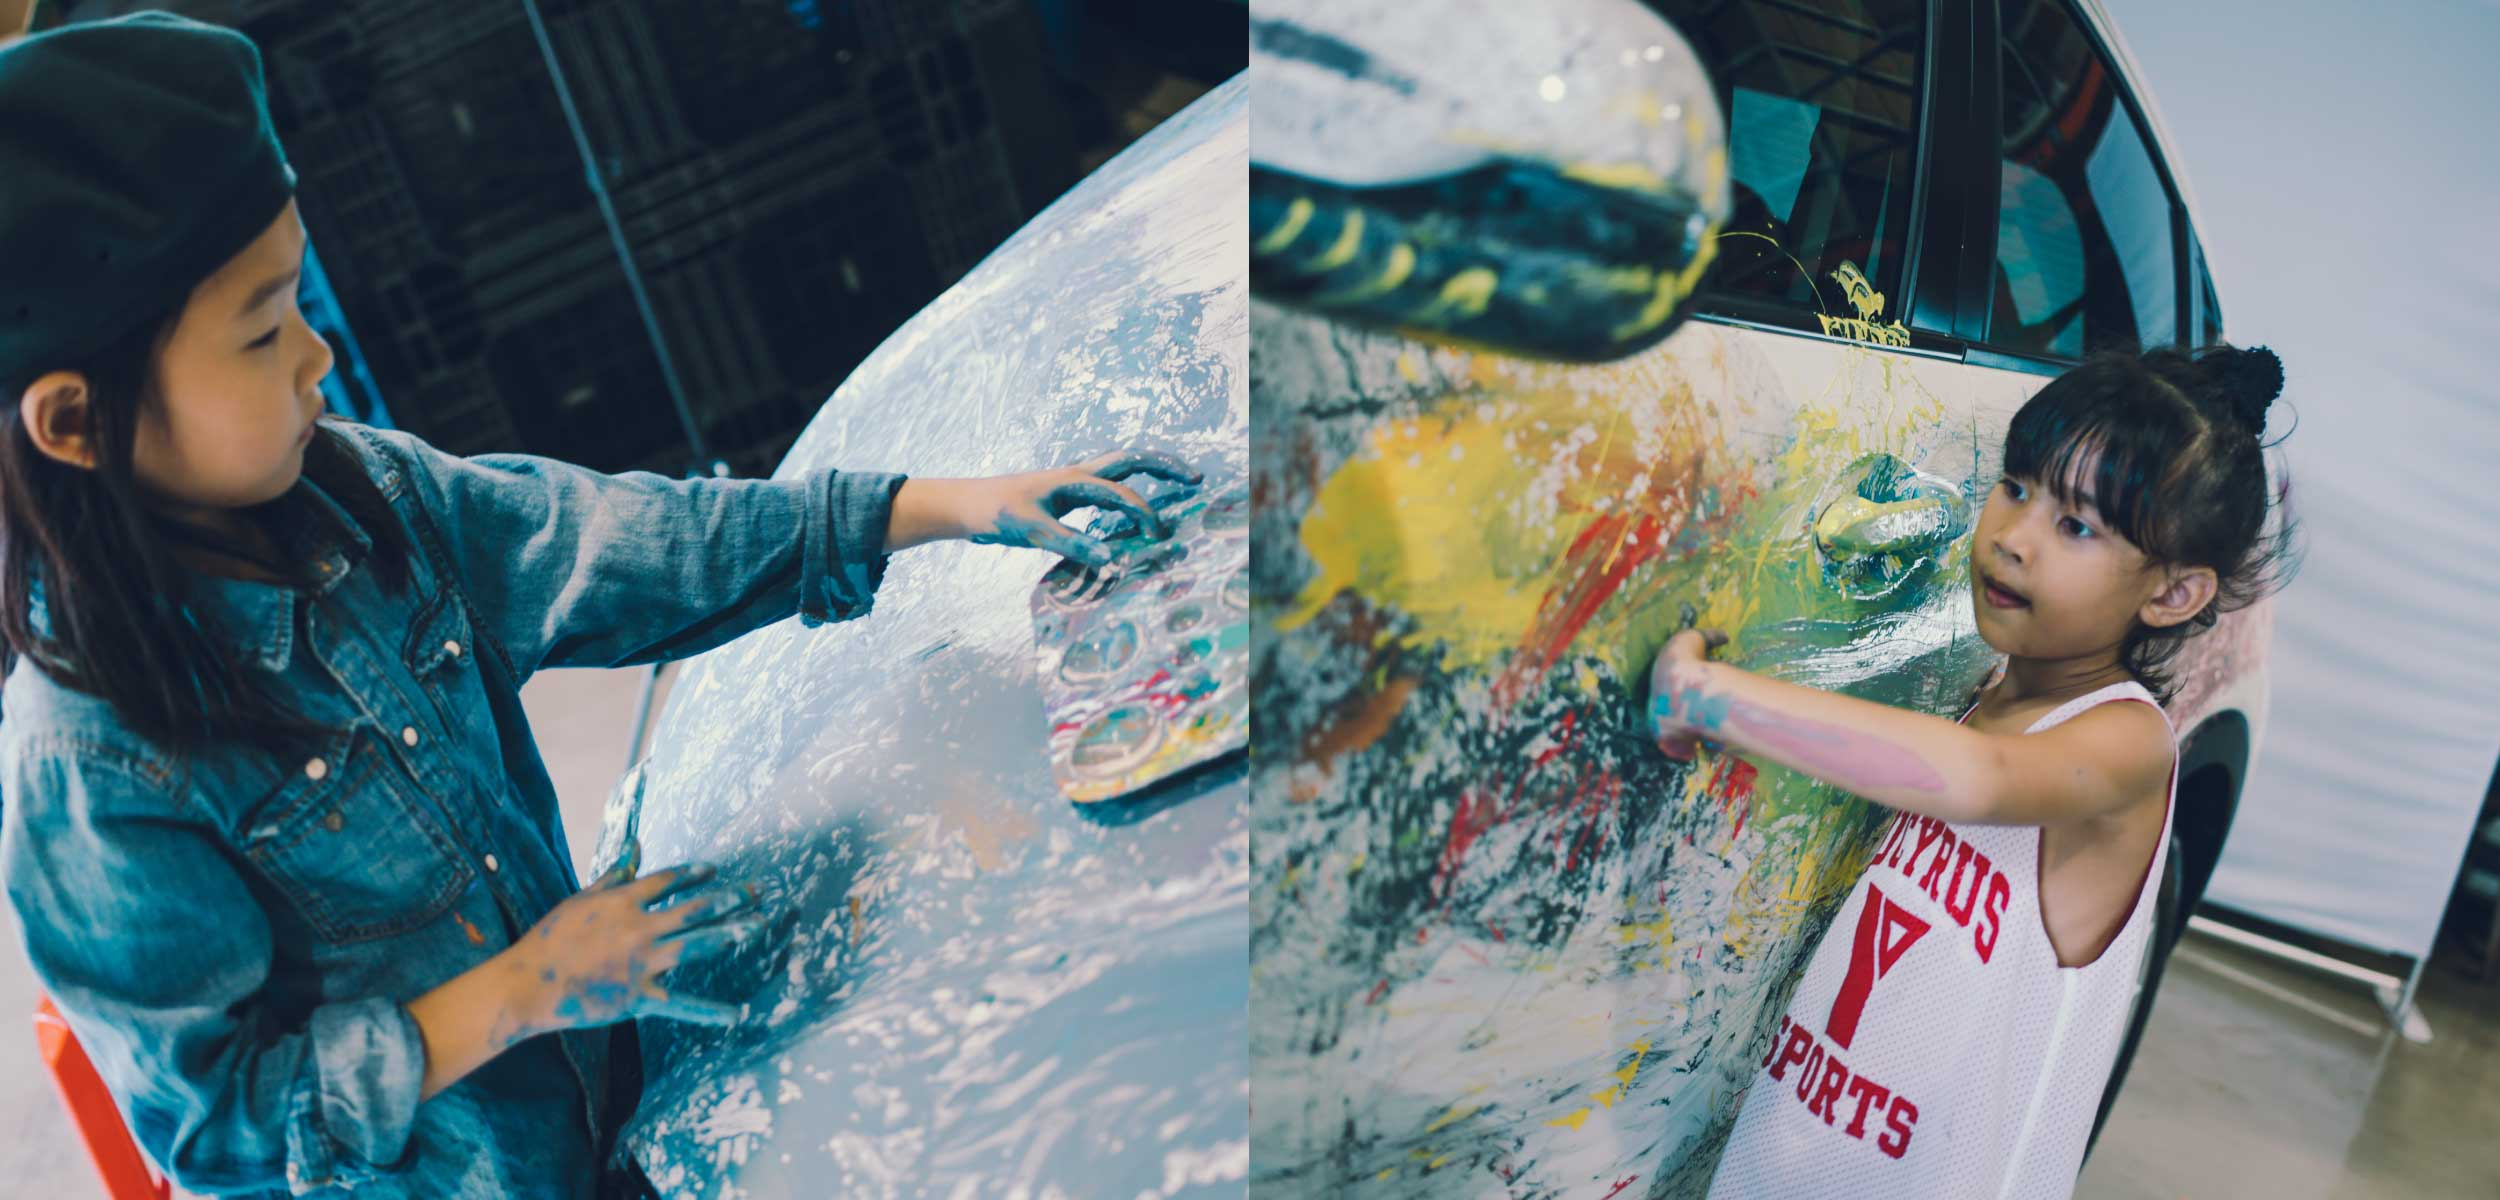 kid-talent-painting-the-car-coated-with-igl-kenzo